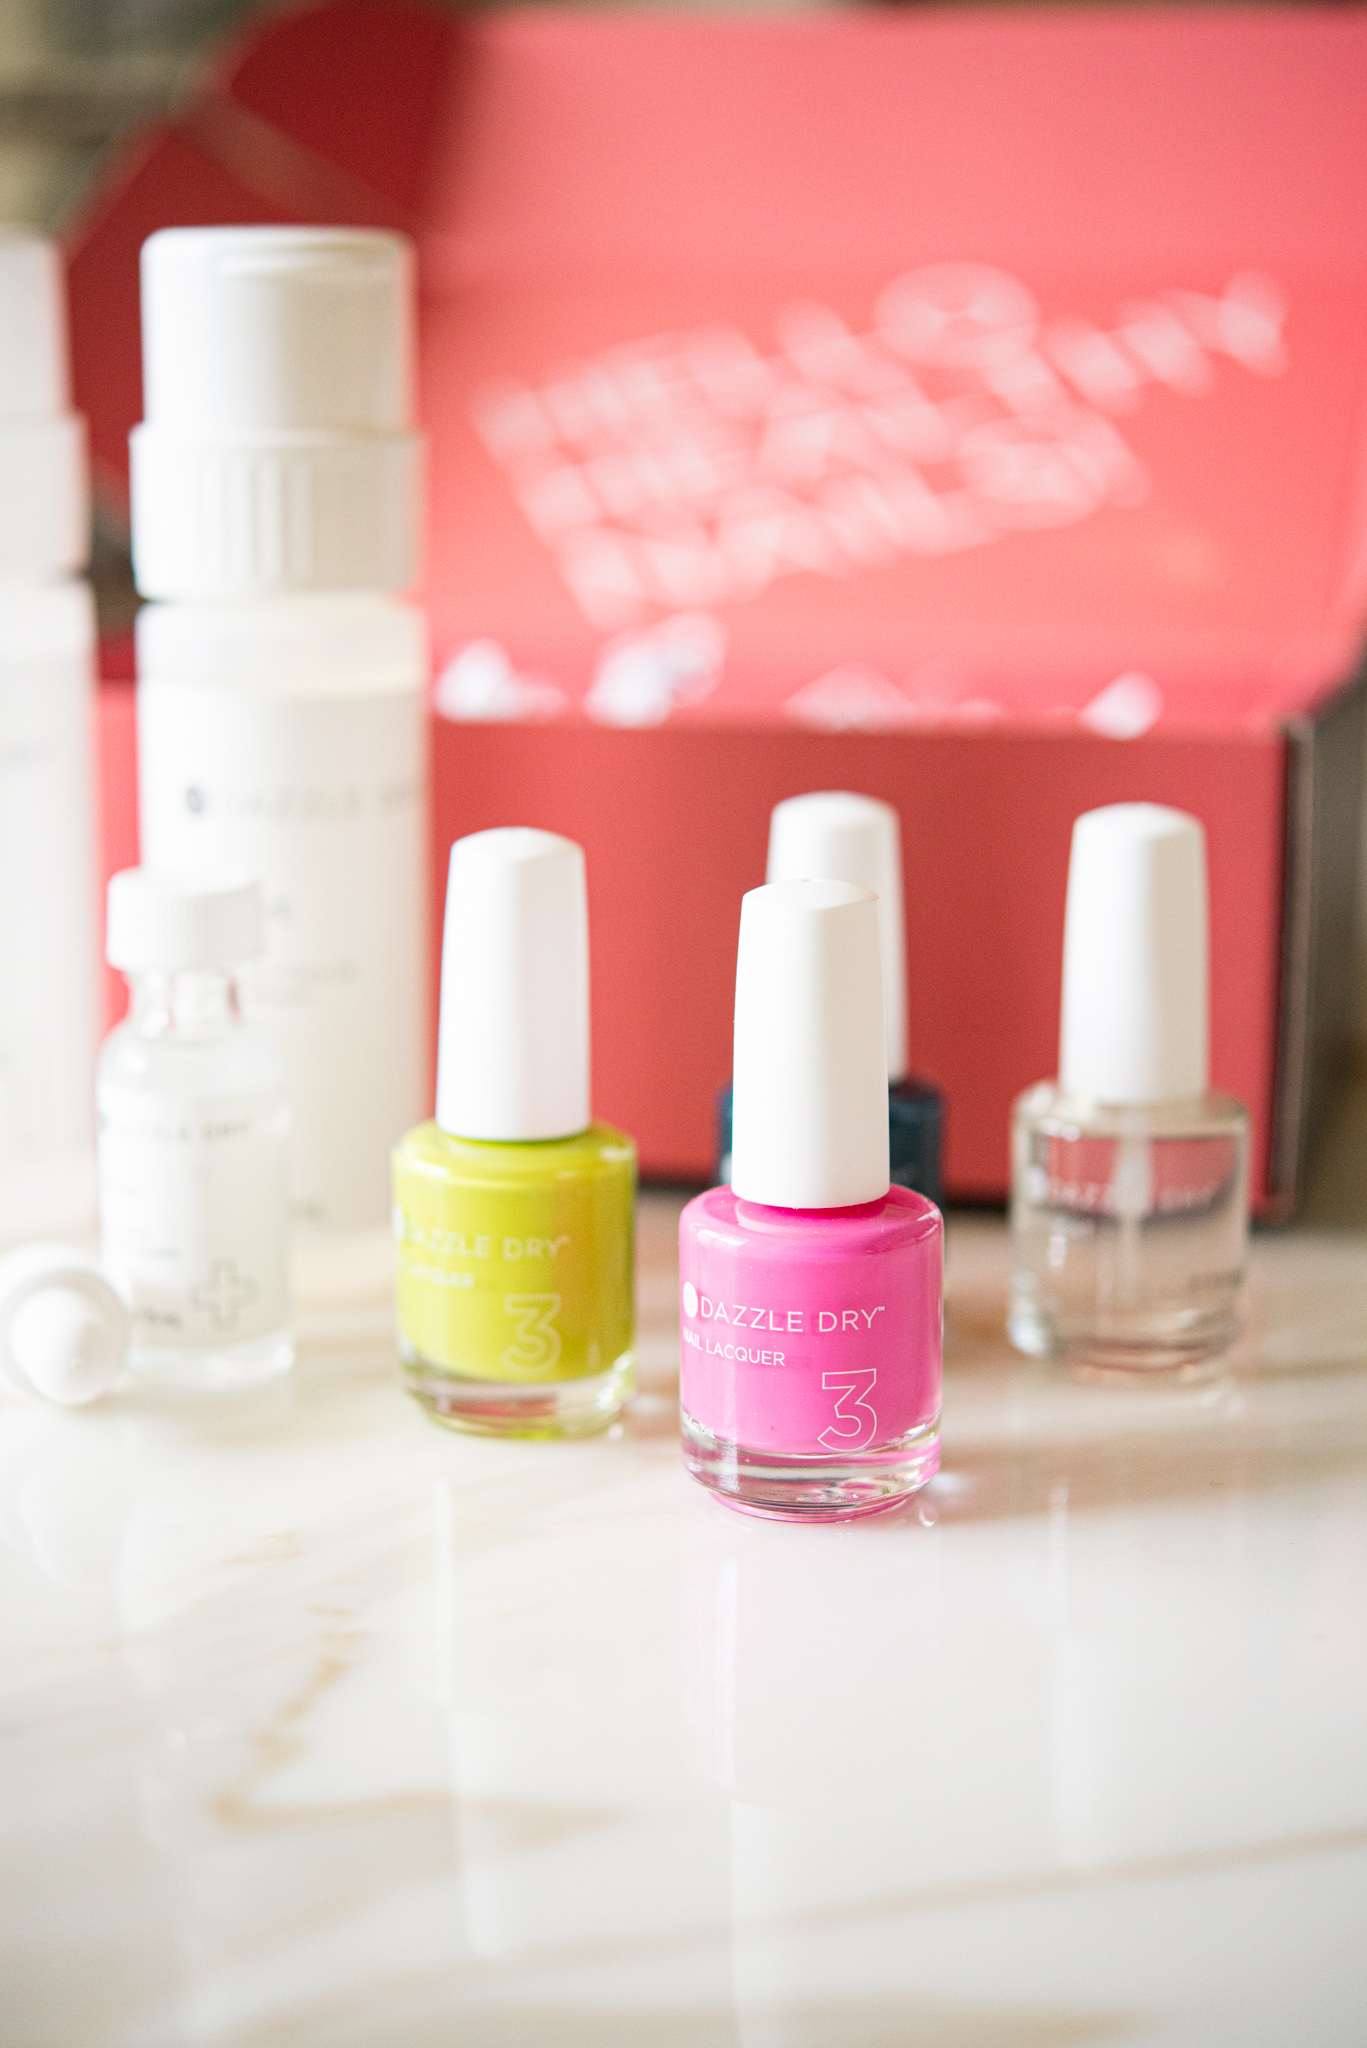 pink nail polish with yellow and clear polish behind it in front of a pink box - dazzle dry nail system